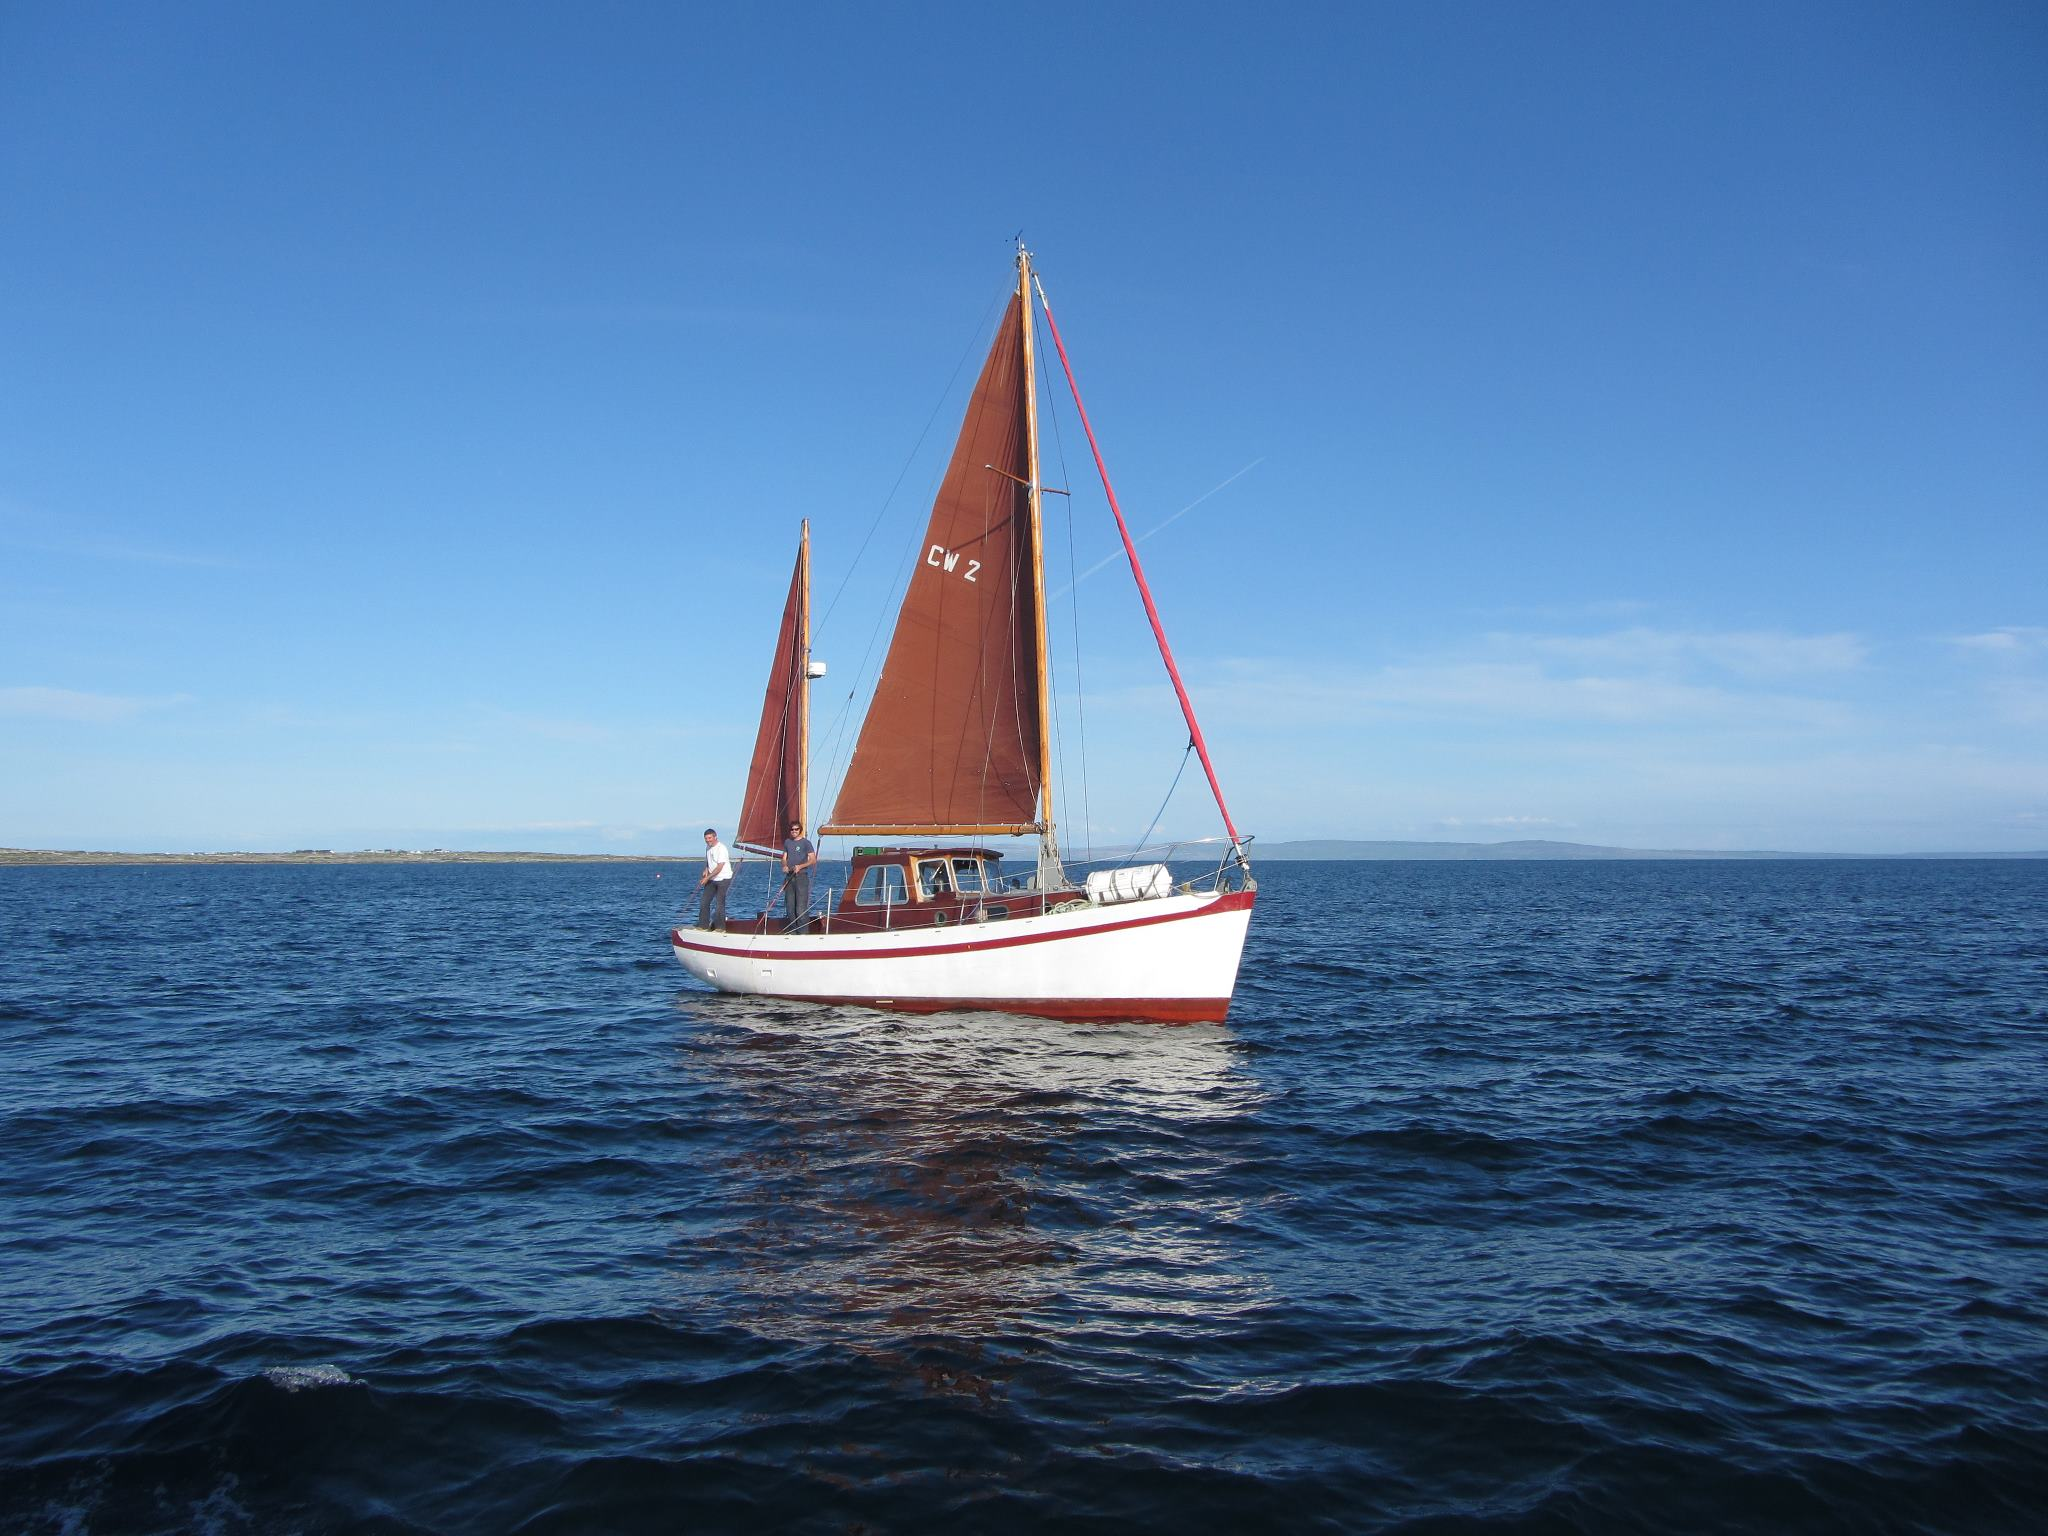 Bees Nees Yacht Charter Sailing in Galway - Visit Galway